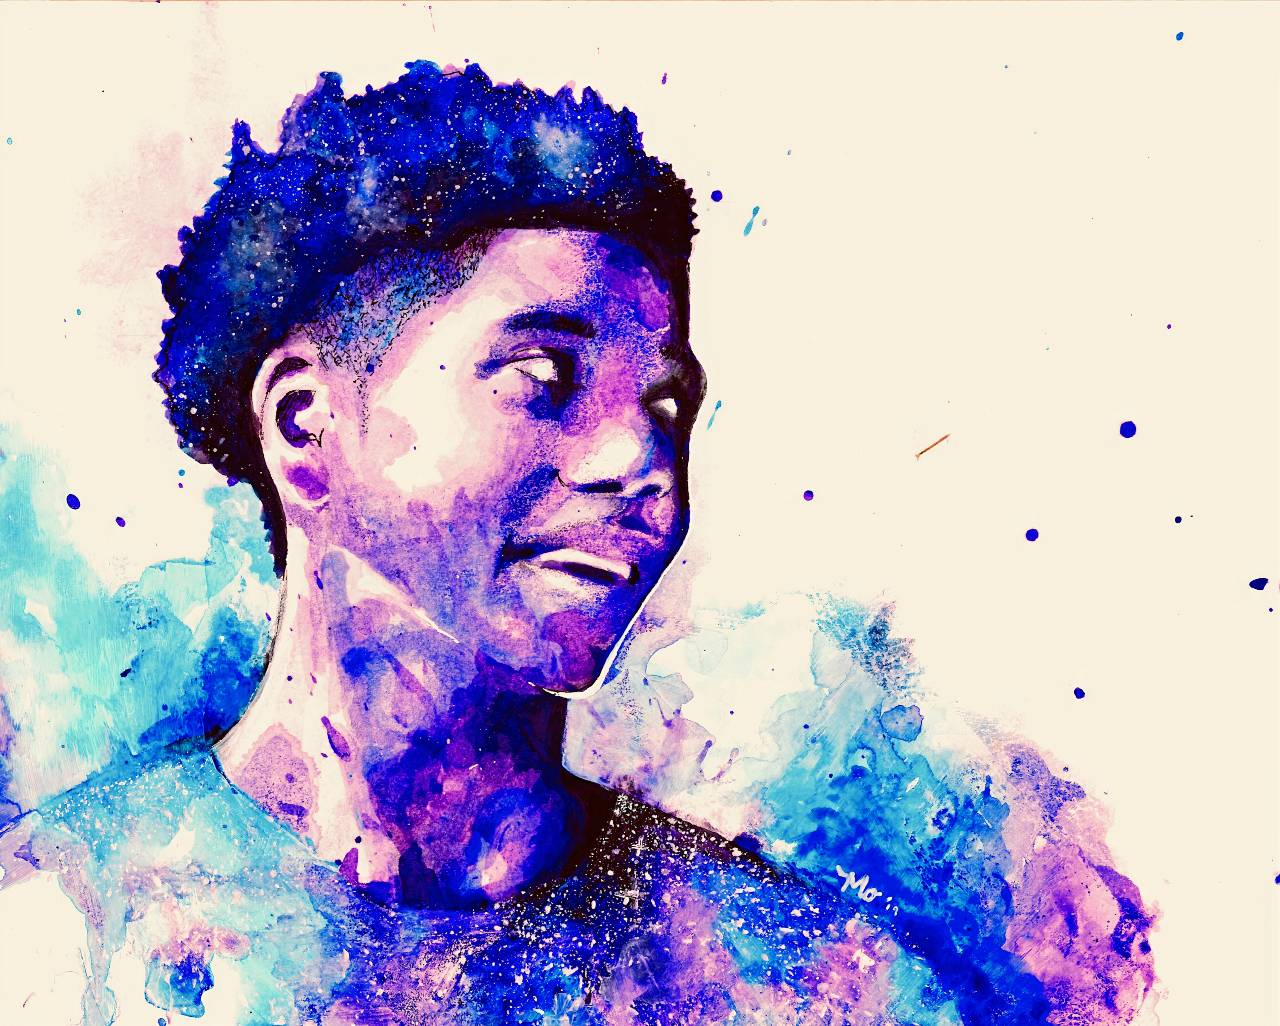 Watercolor portrait of Anwon Rose II, looking to the side and smiling slightly. The background is mostly white. The figure is rendered in cool colors of purples and blues